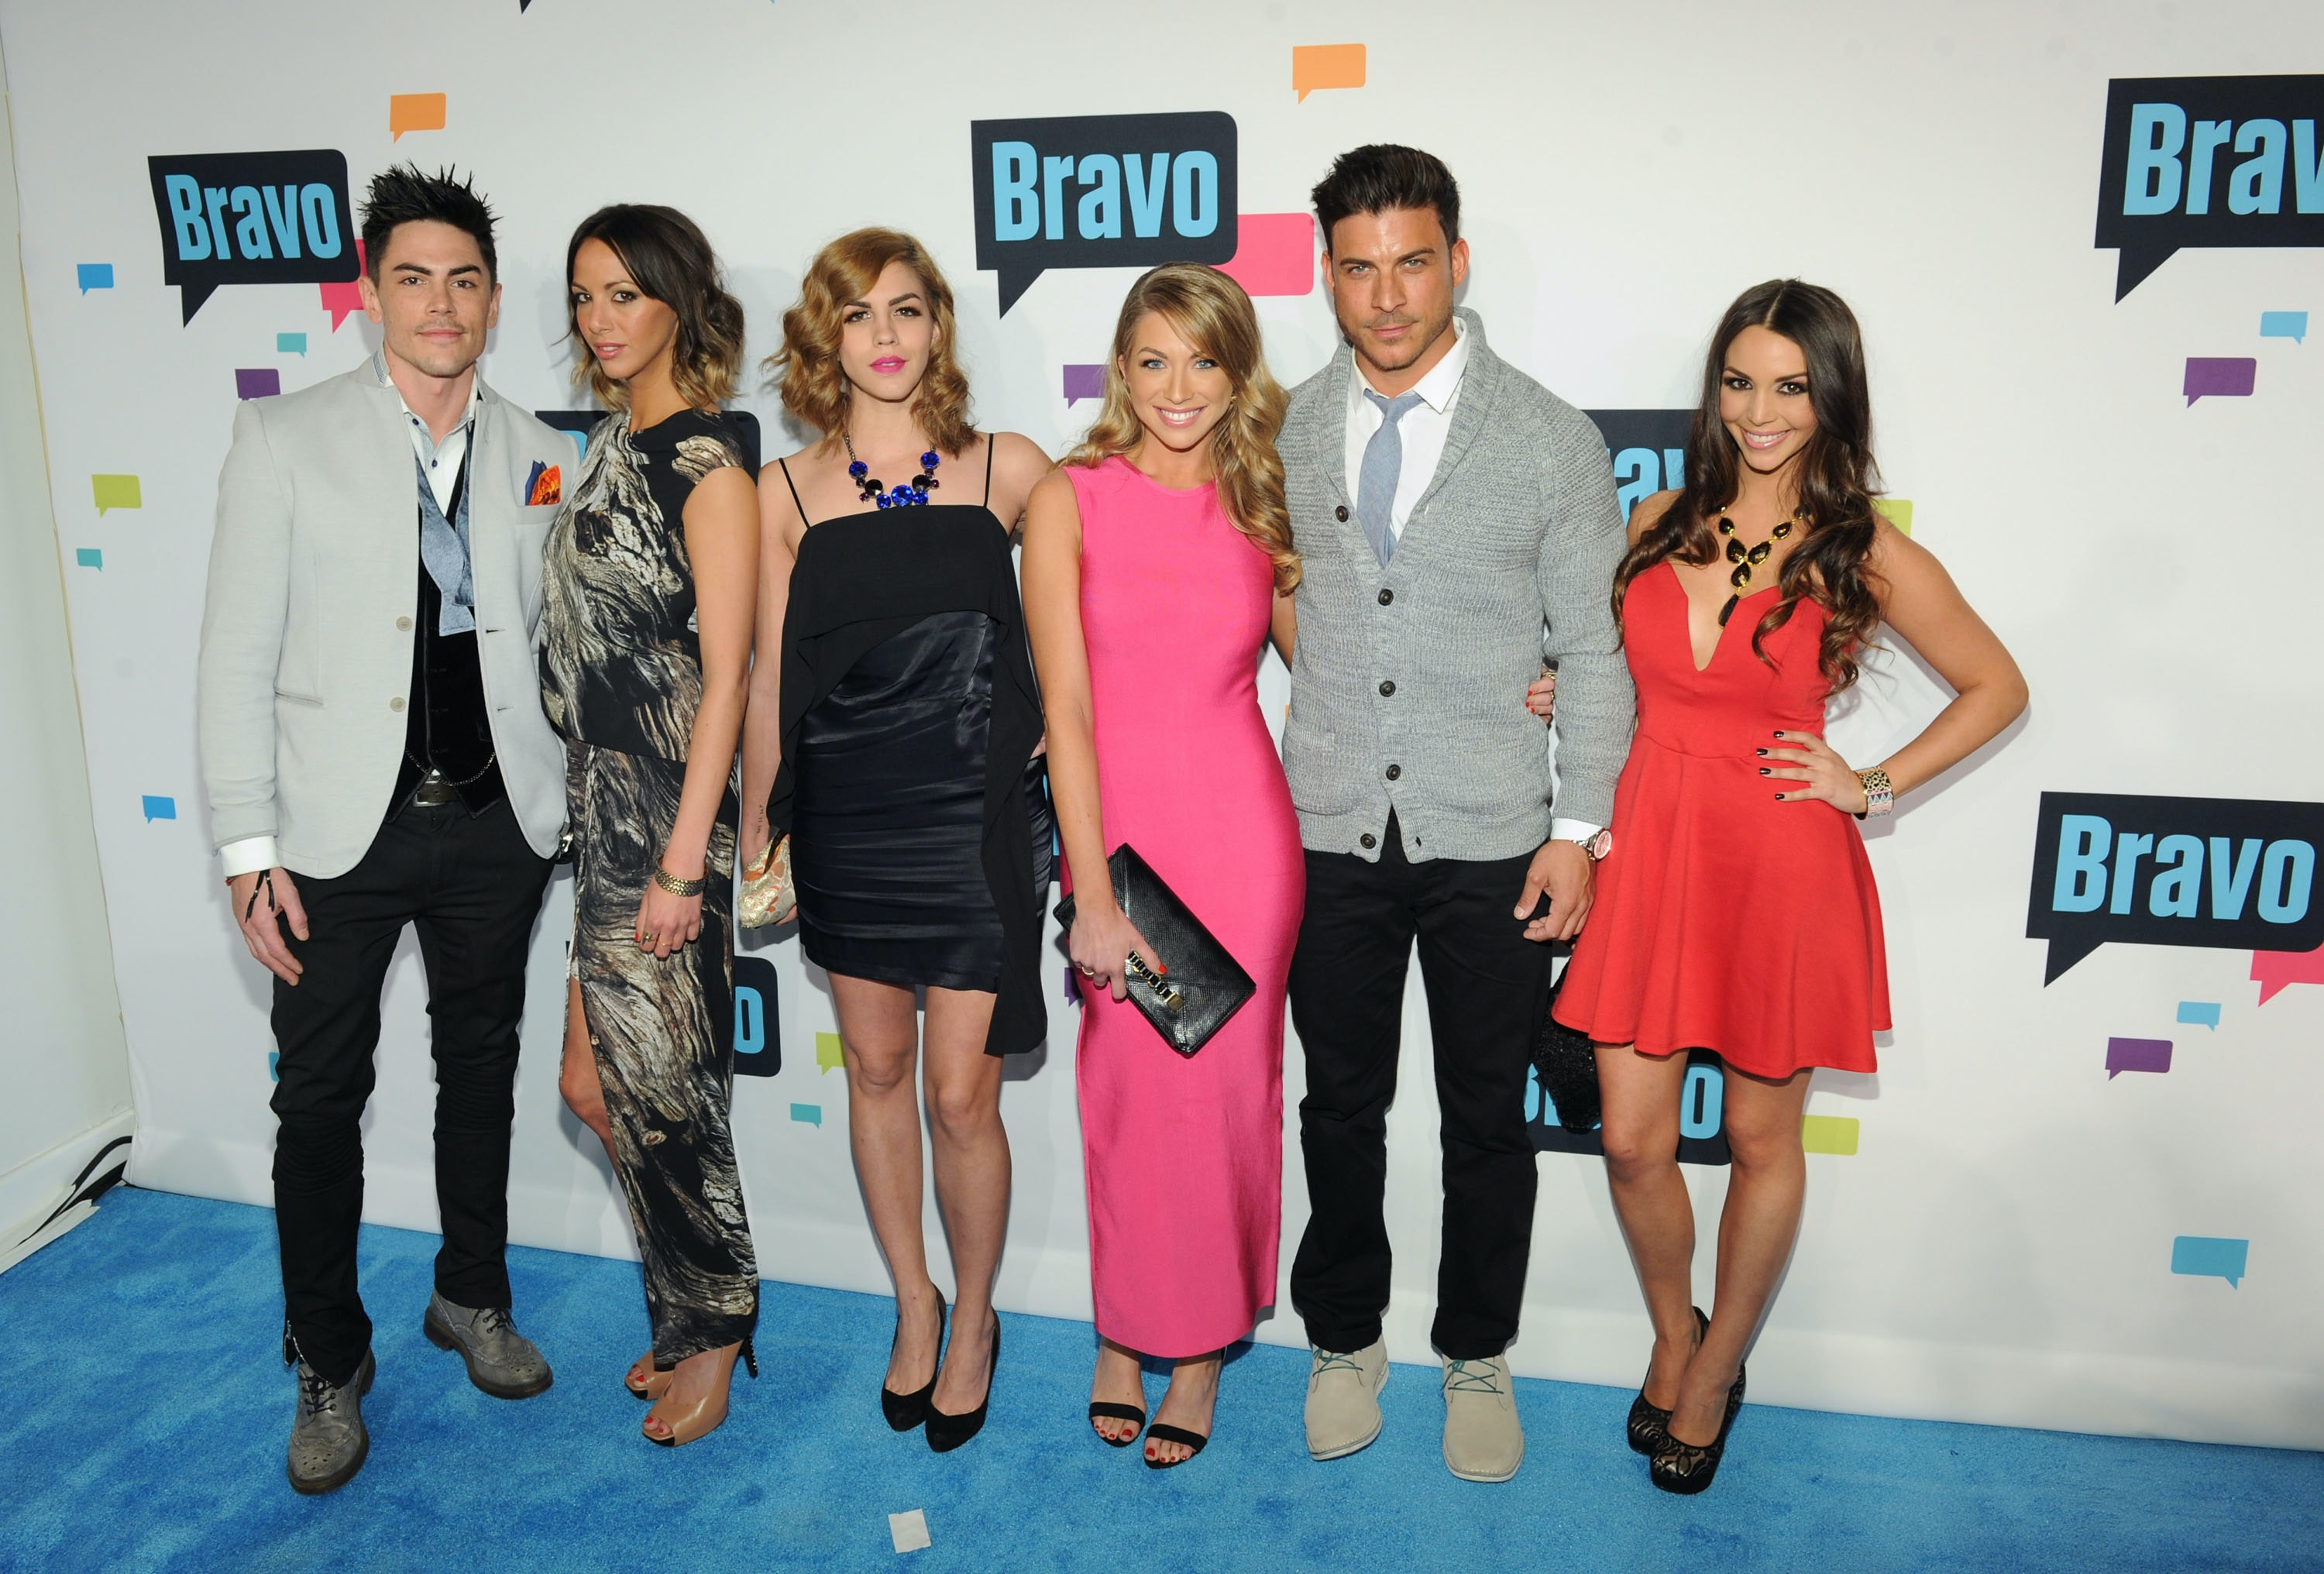 Comparing Vanderpump Rules Cast From Season 1 To Now Shows Just How Much Things Have Changed